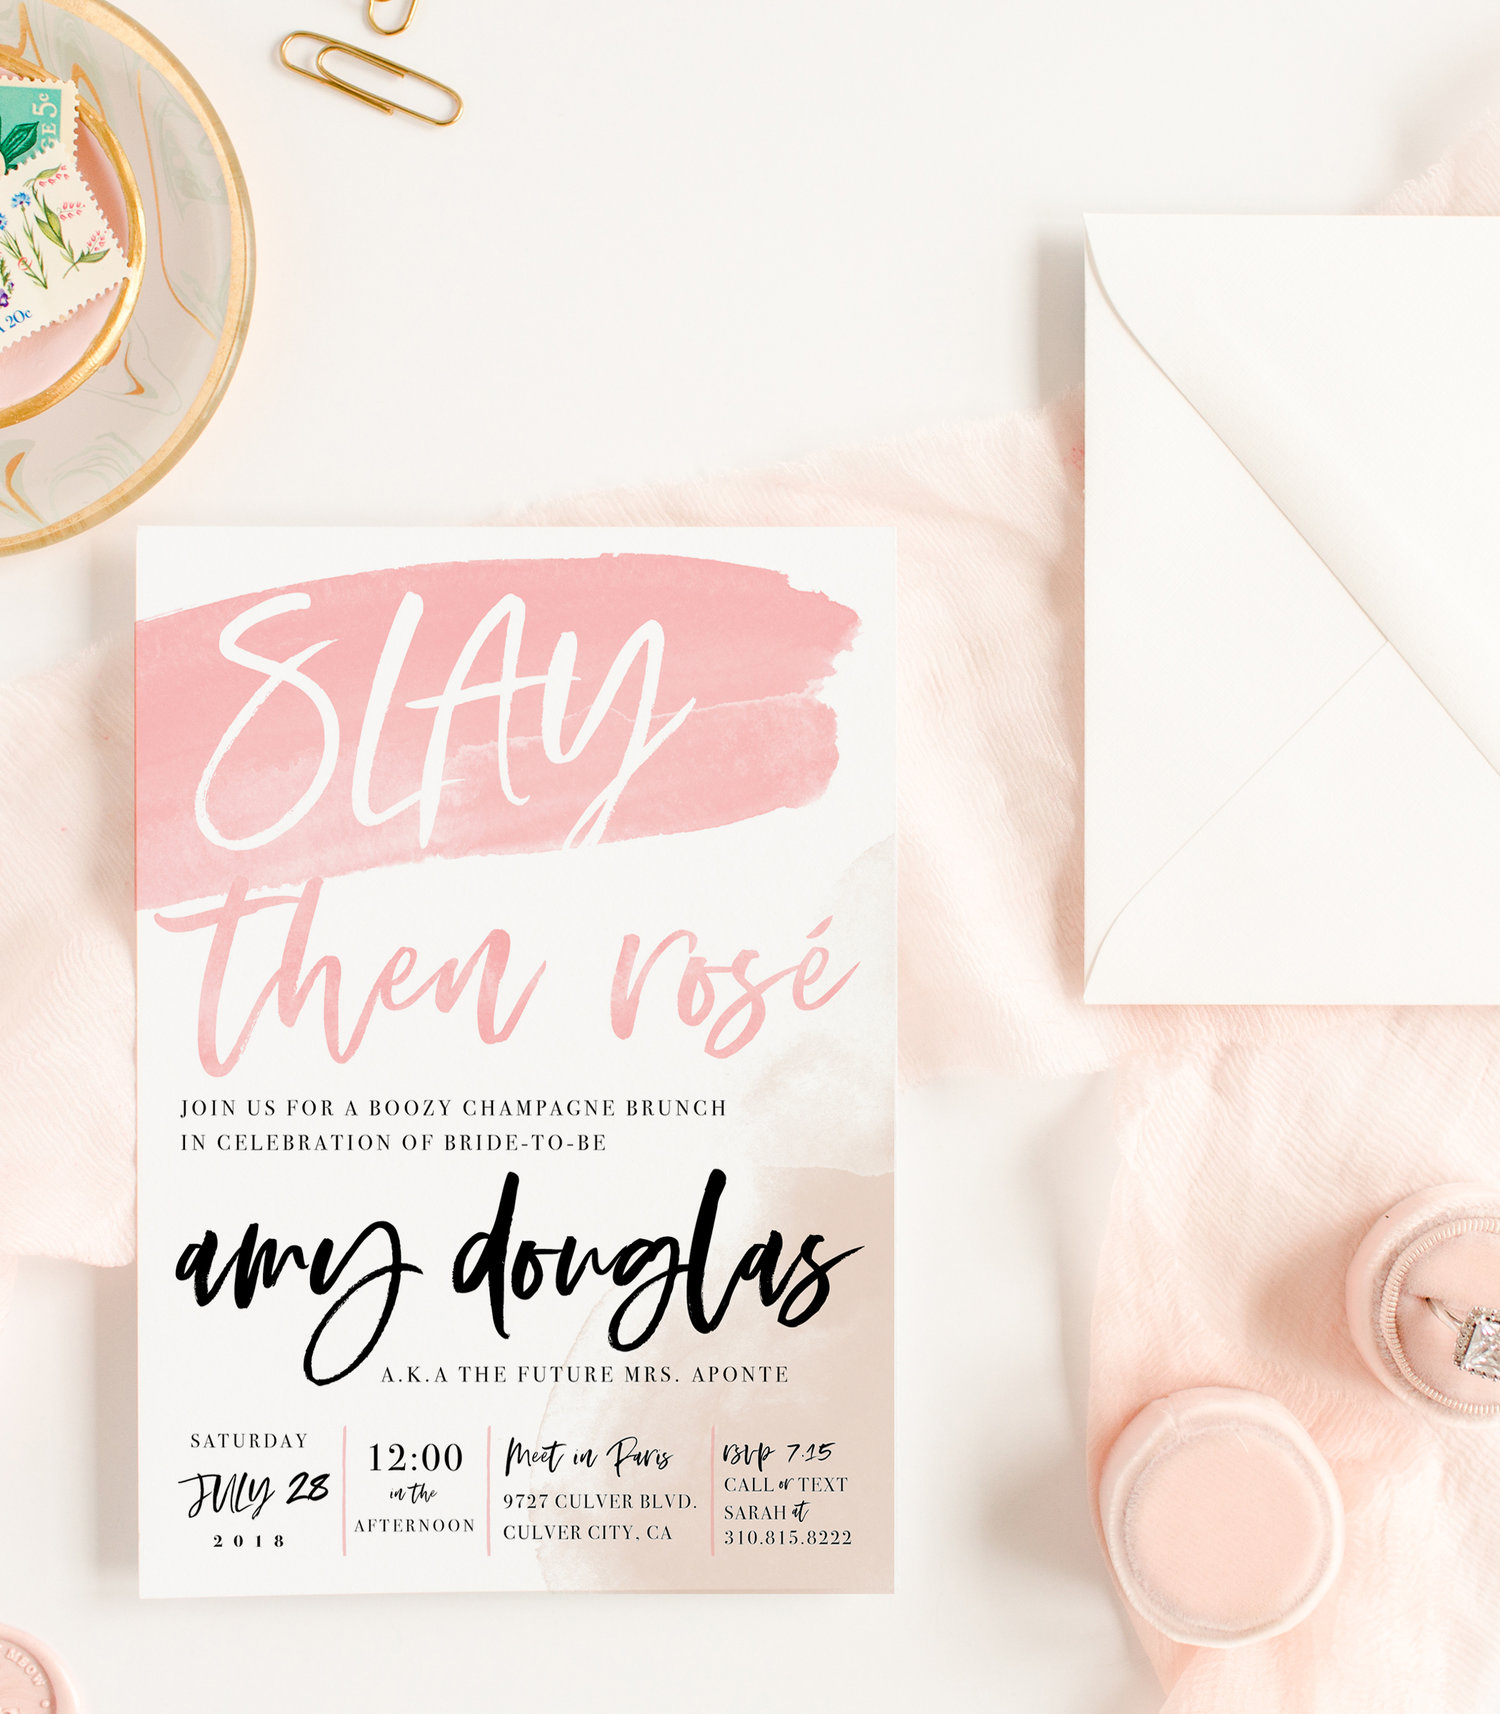 Kitty meow boutique slay then ros champagne bridal shower invitation for bride to be filmwisefo